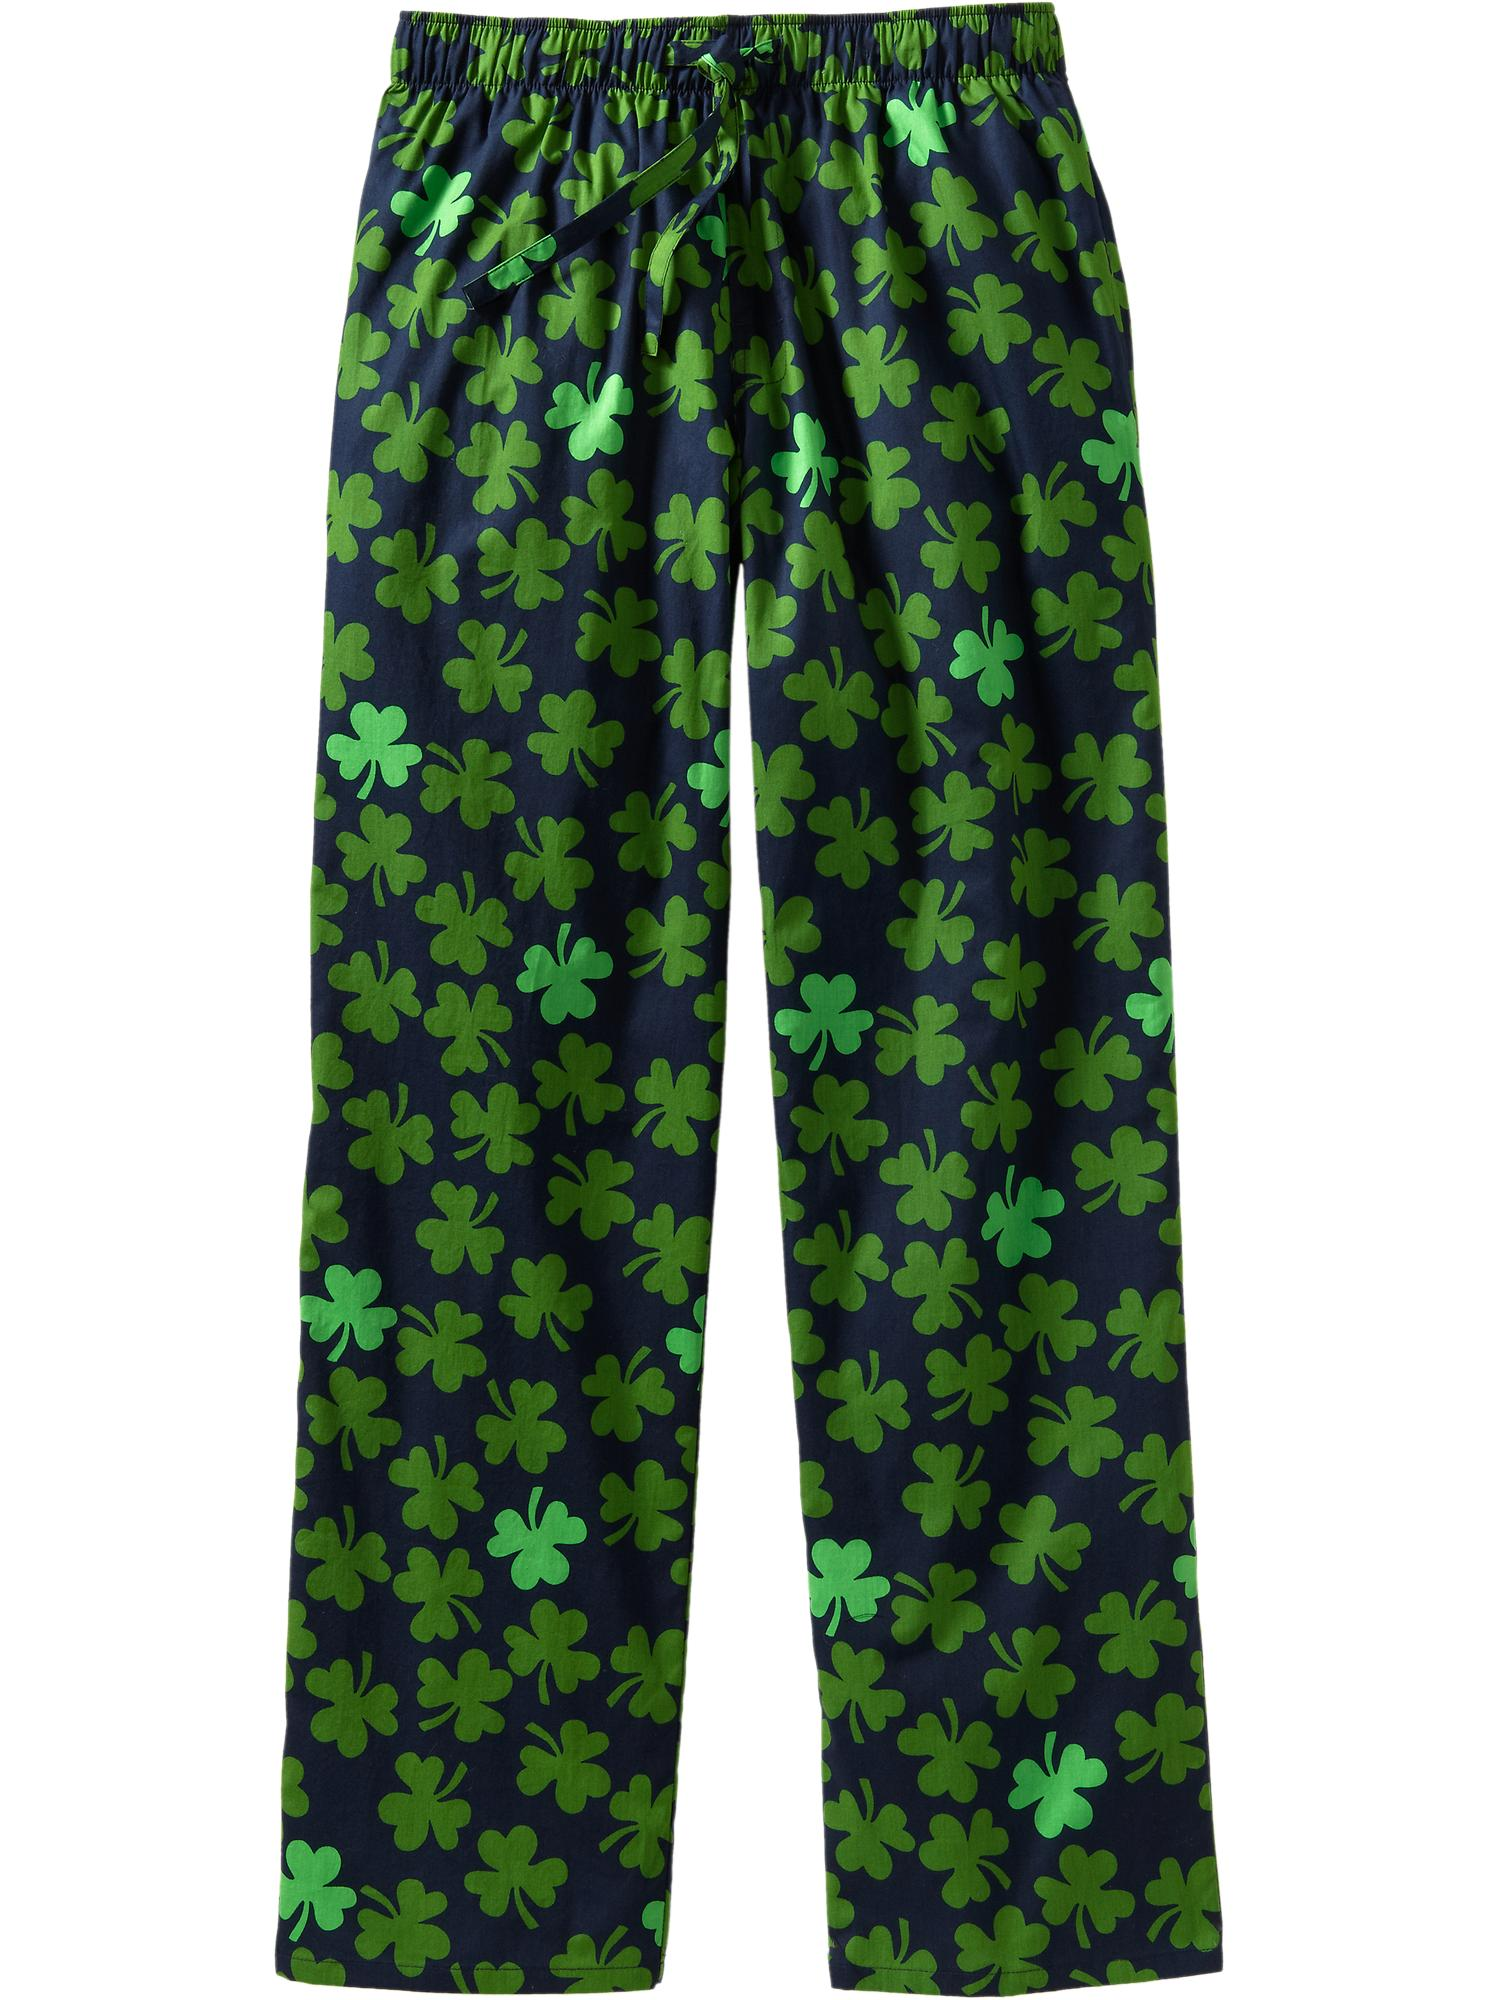 Old Navy Patterned Pj Pants In Green For Men Shamrock